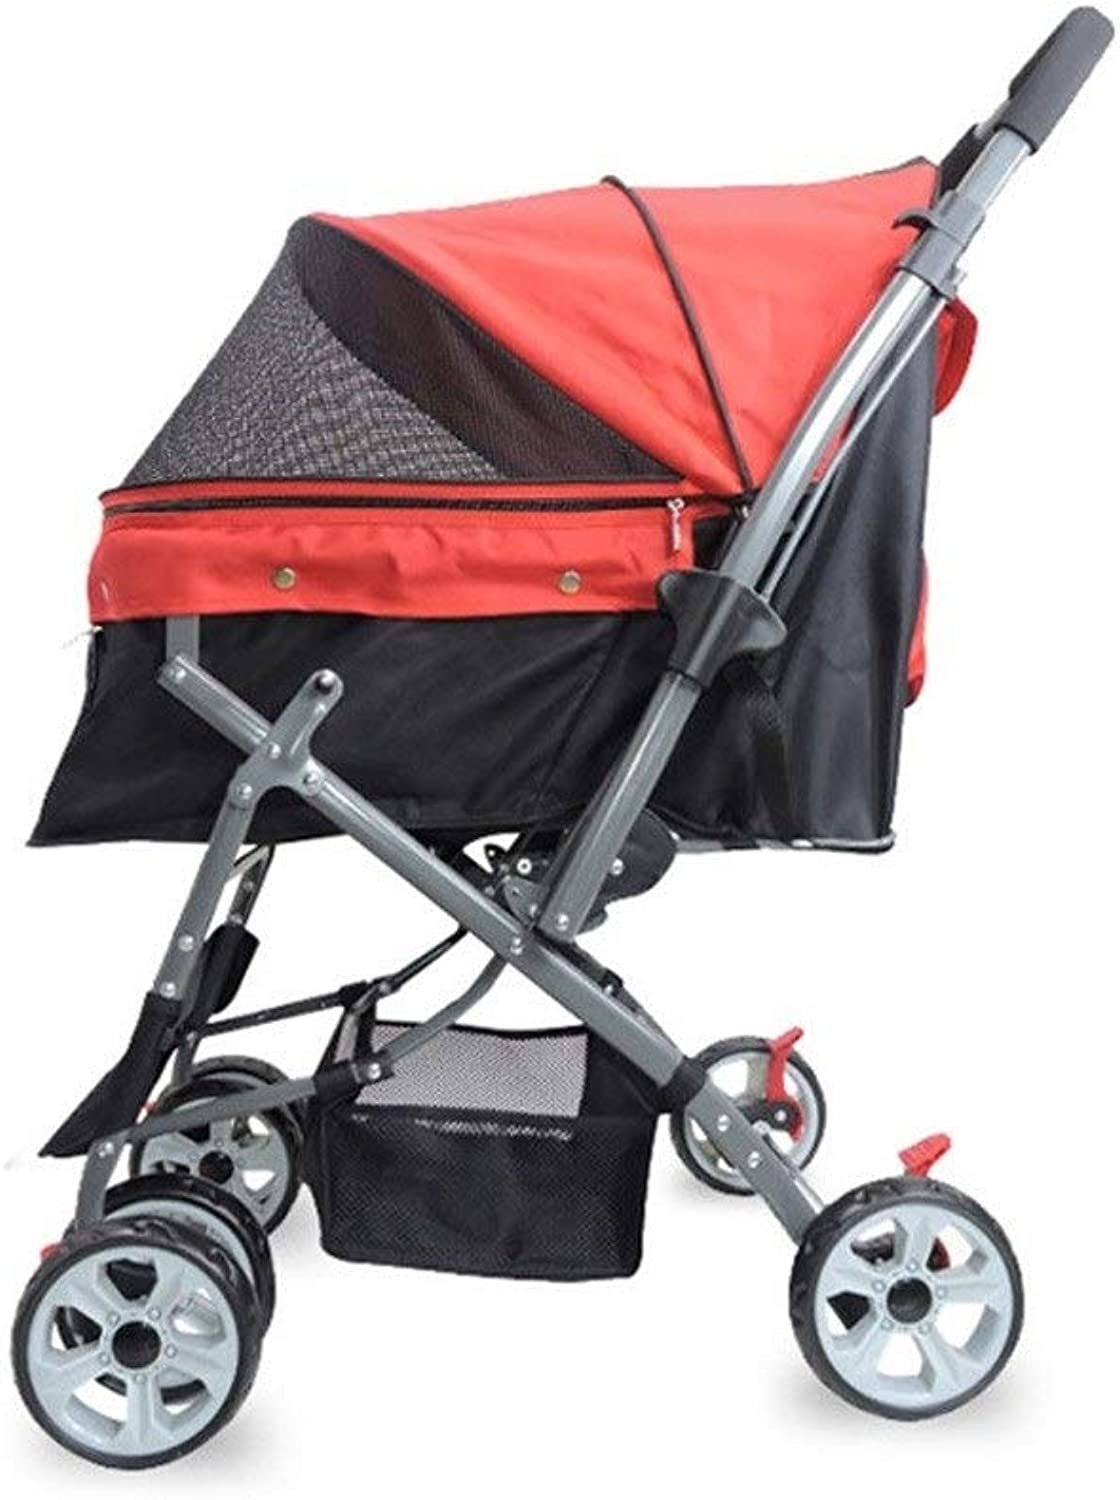 Dog Pushchair, Foldable Stroller Pram Carrier Travel Outdoor Cat Pet Cart For Medium Large Disabled Dog 4 Wheels Trolley (color   Red)